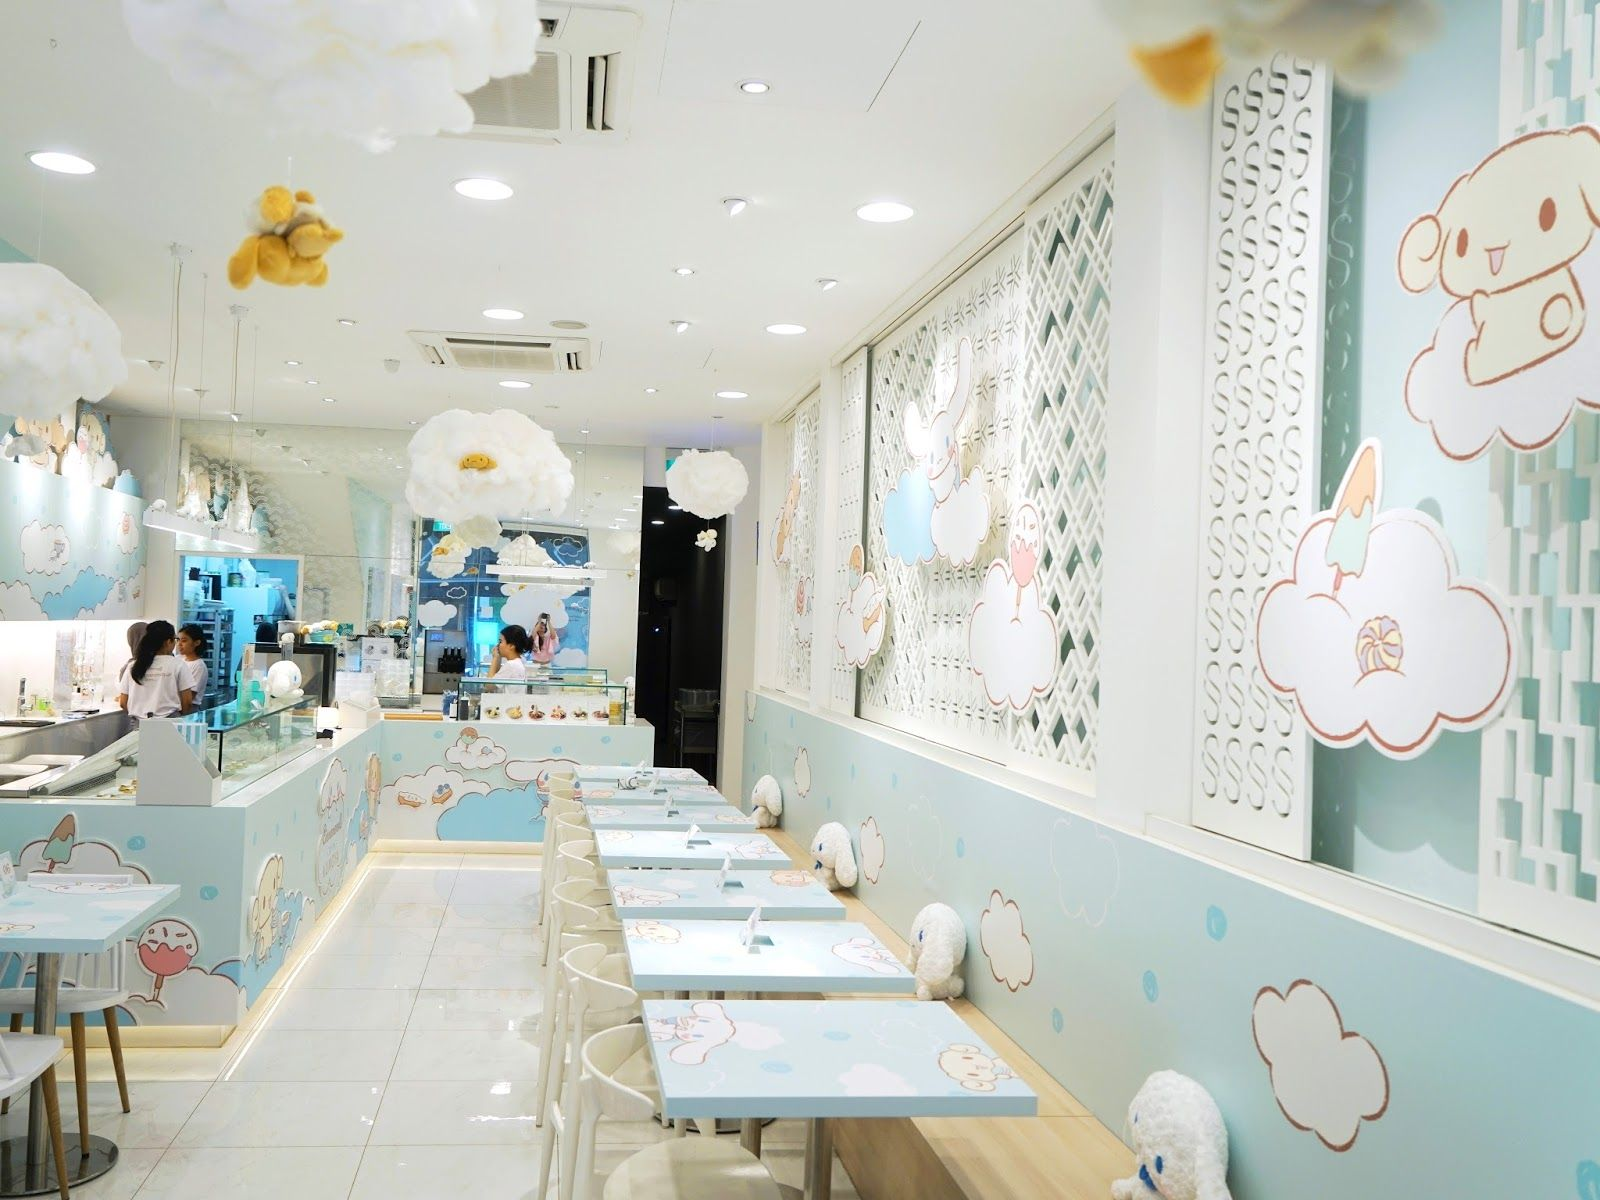 Images Of Cute Anime Restaurant Background